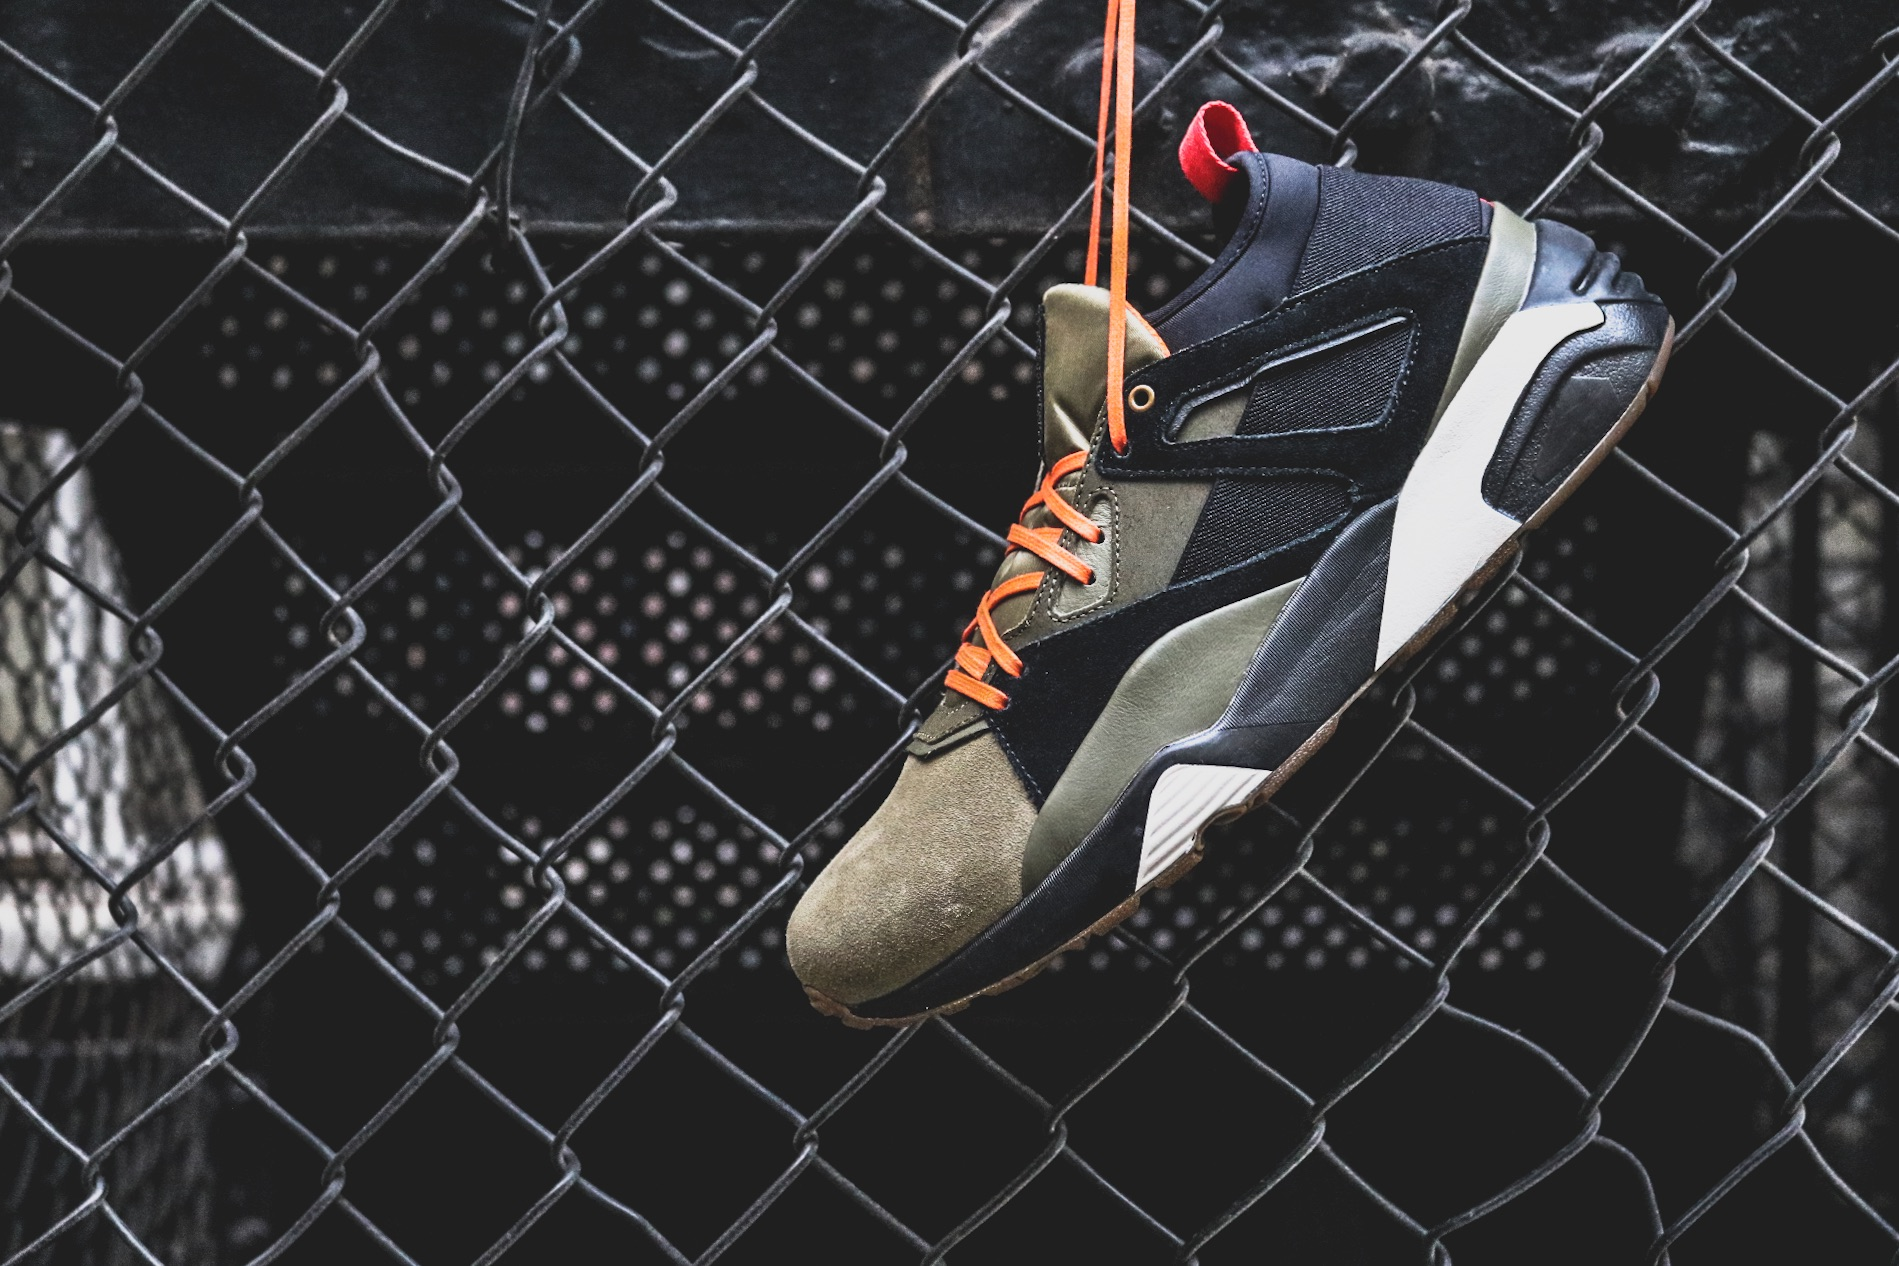 e6c4fdc0f9c3 Sneakerness x Puma Blaze of Glory Sock will be limited to 100 pairs . ...